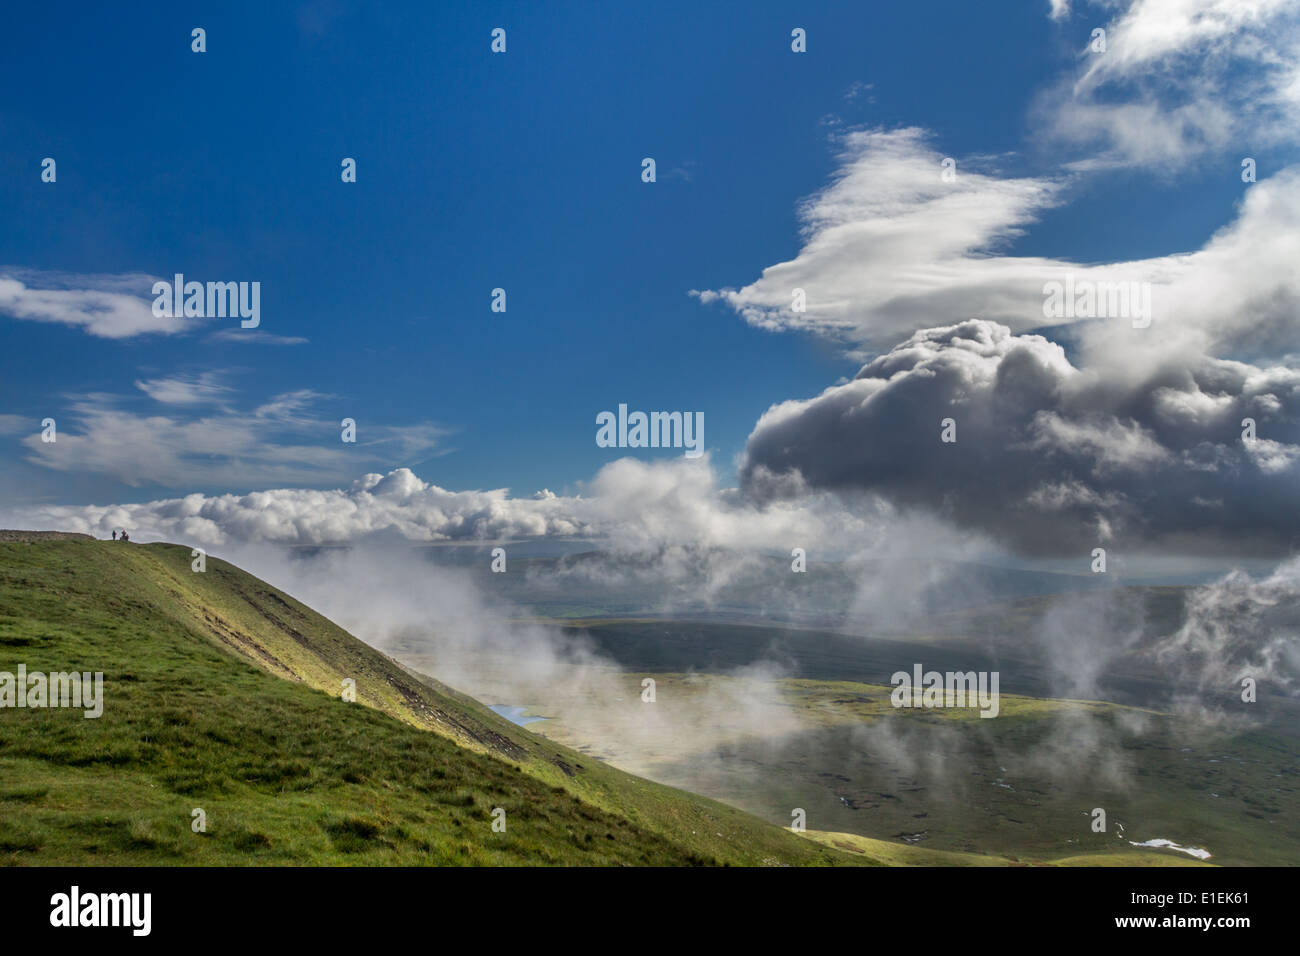 Whernside, one of the Yorkshire 3 Peaks, from the summit, rural Yorkshire - Stock Image